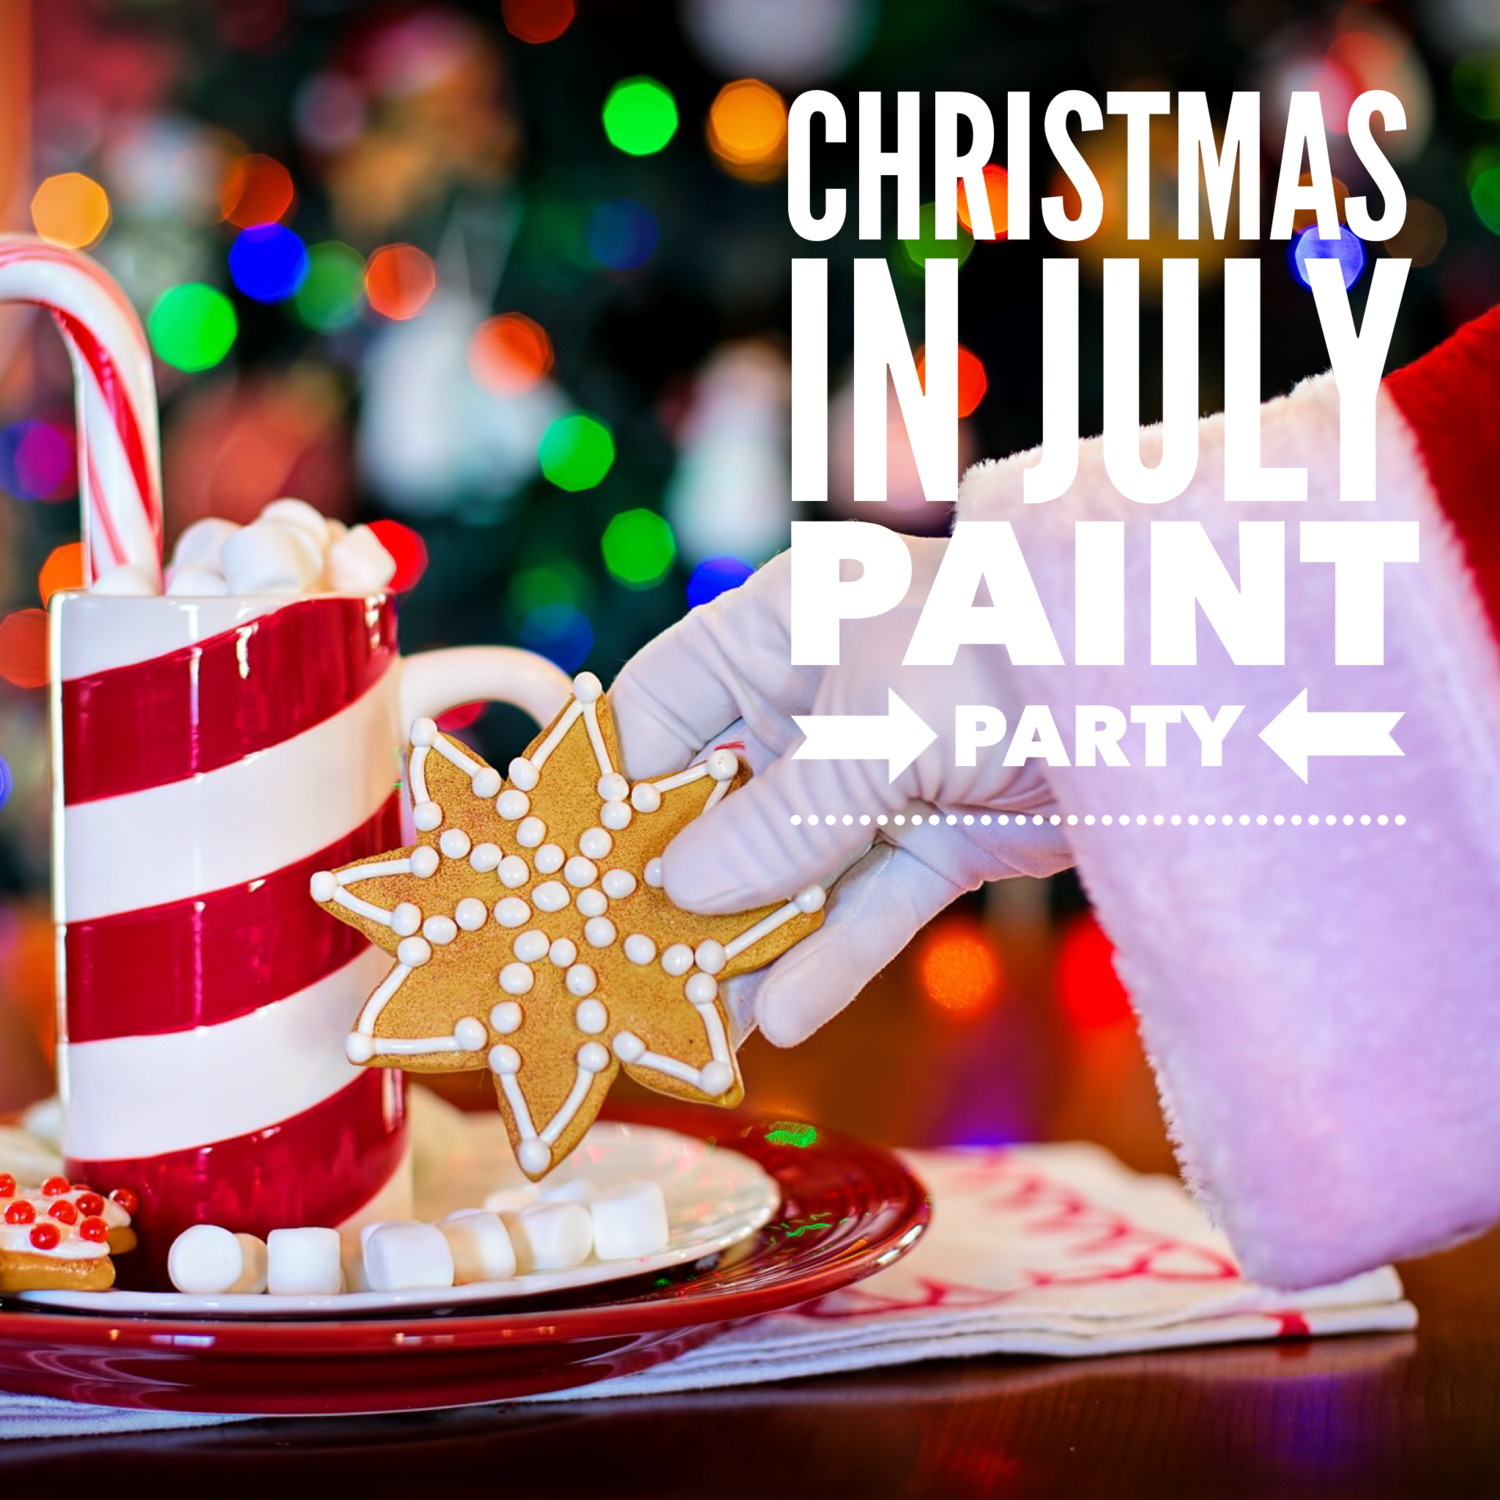 Christmas In July Party Food.Christmas In July Paint Party Sunday July 21st 10am 2pm